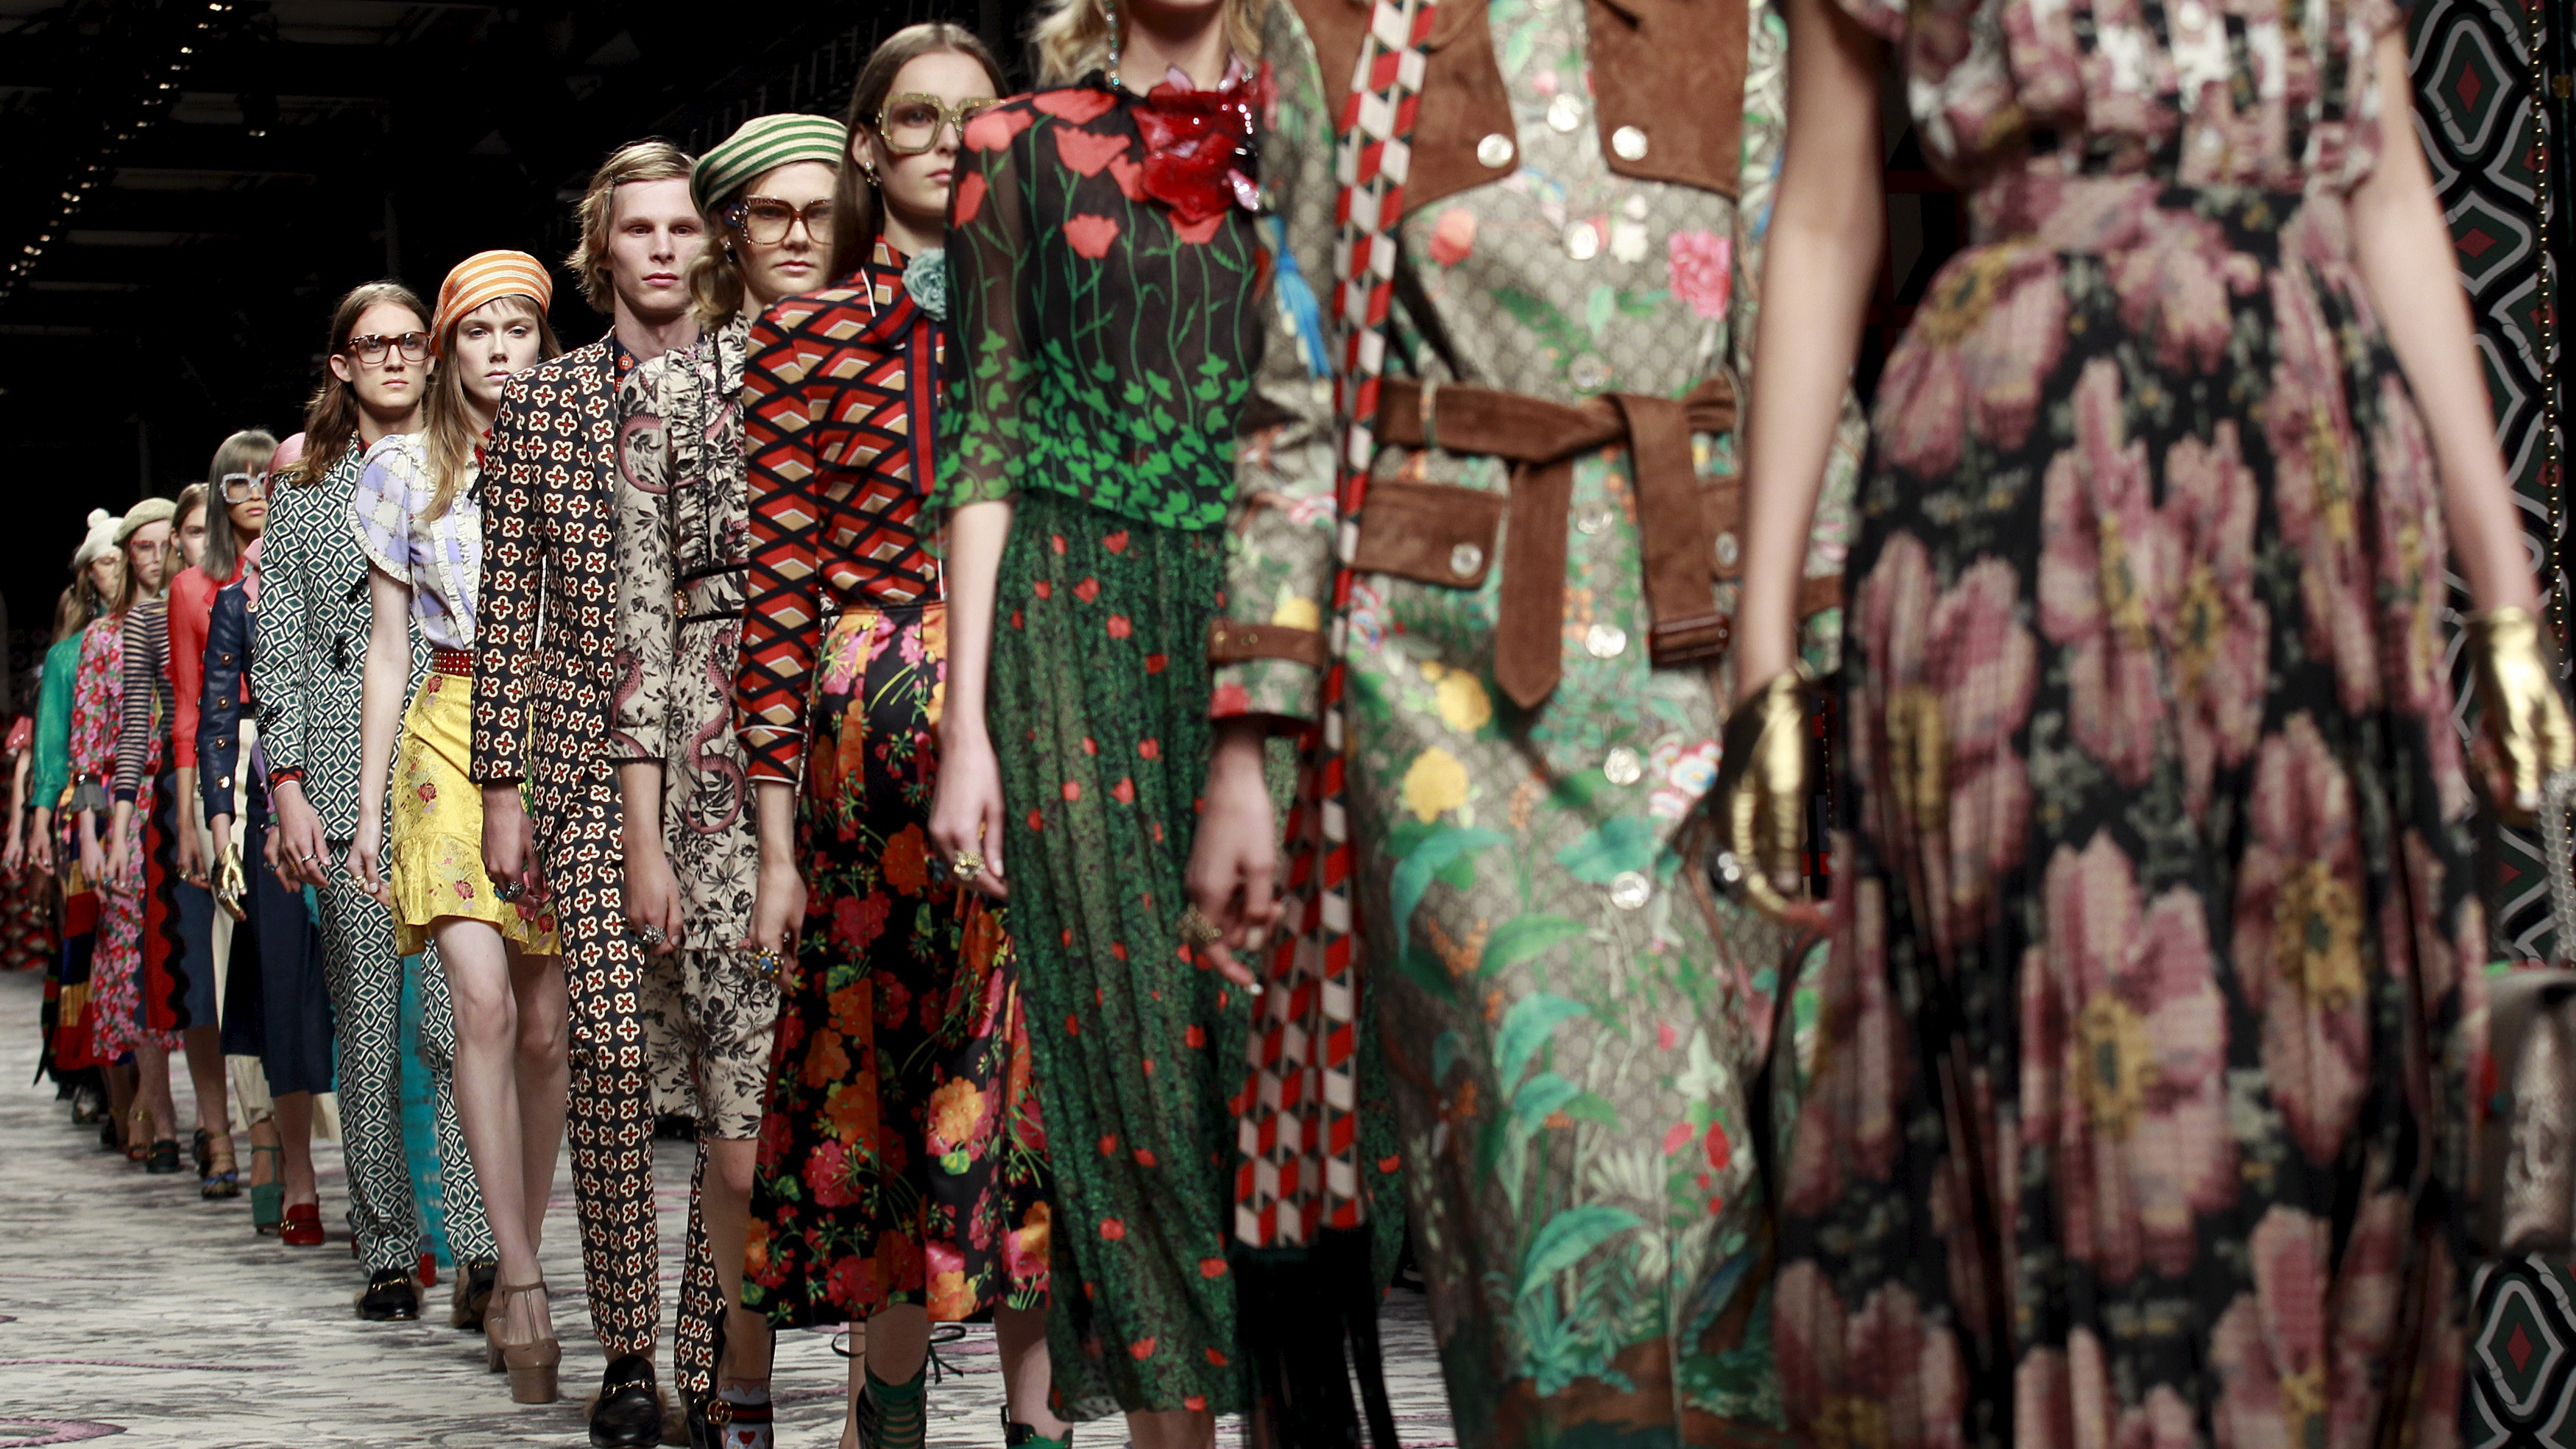 Models parade at the end of Gucci's Spring/Summer 2016 collection during Milan Fashion Week in Italy September 23, 2015.